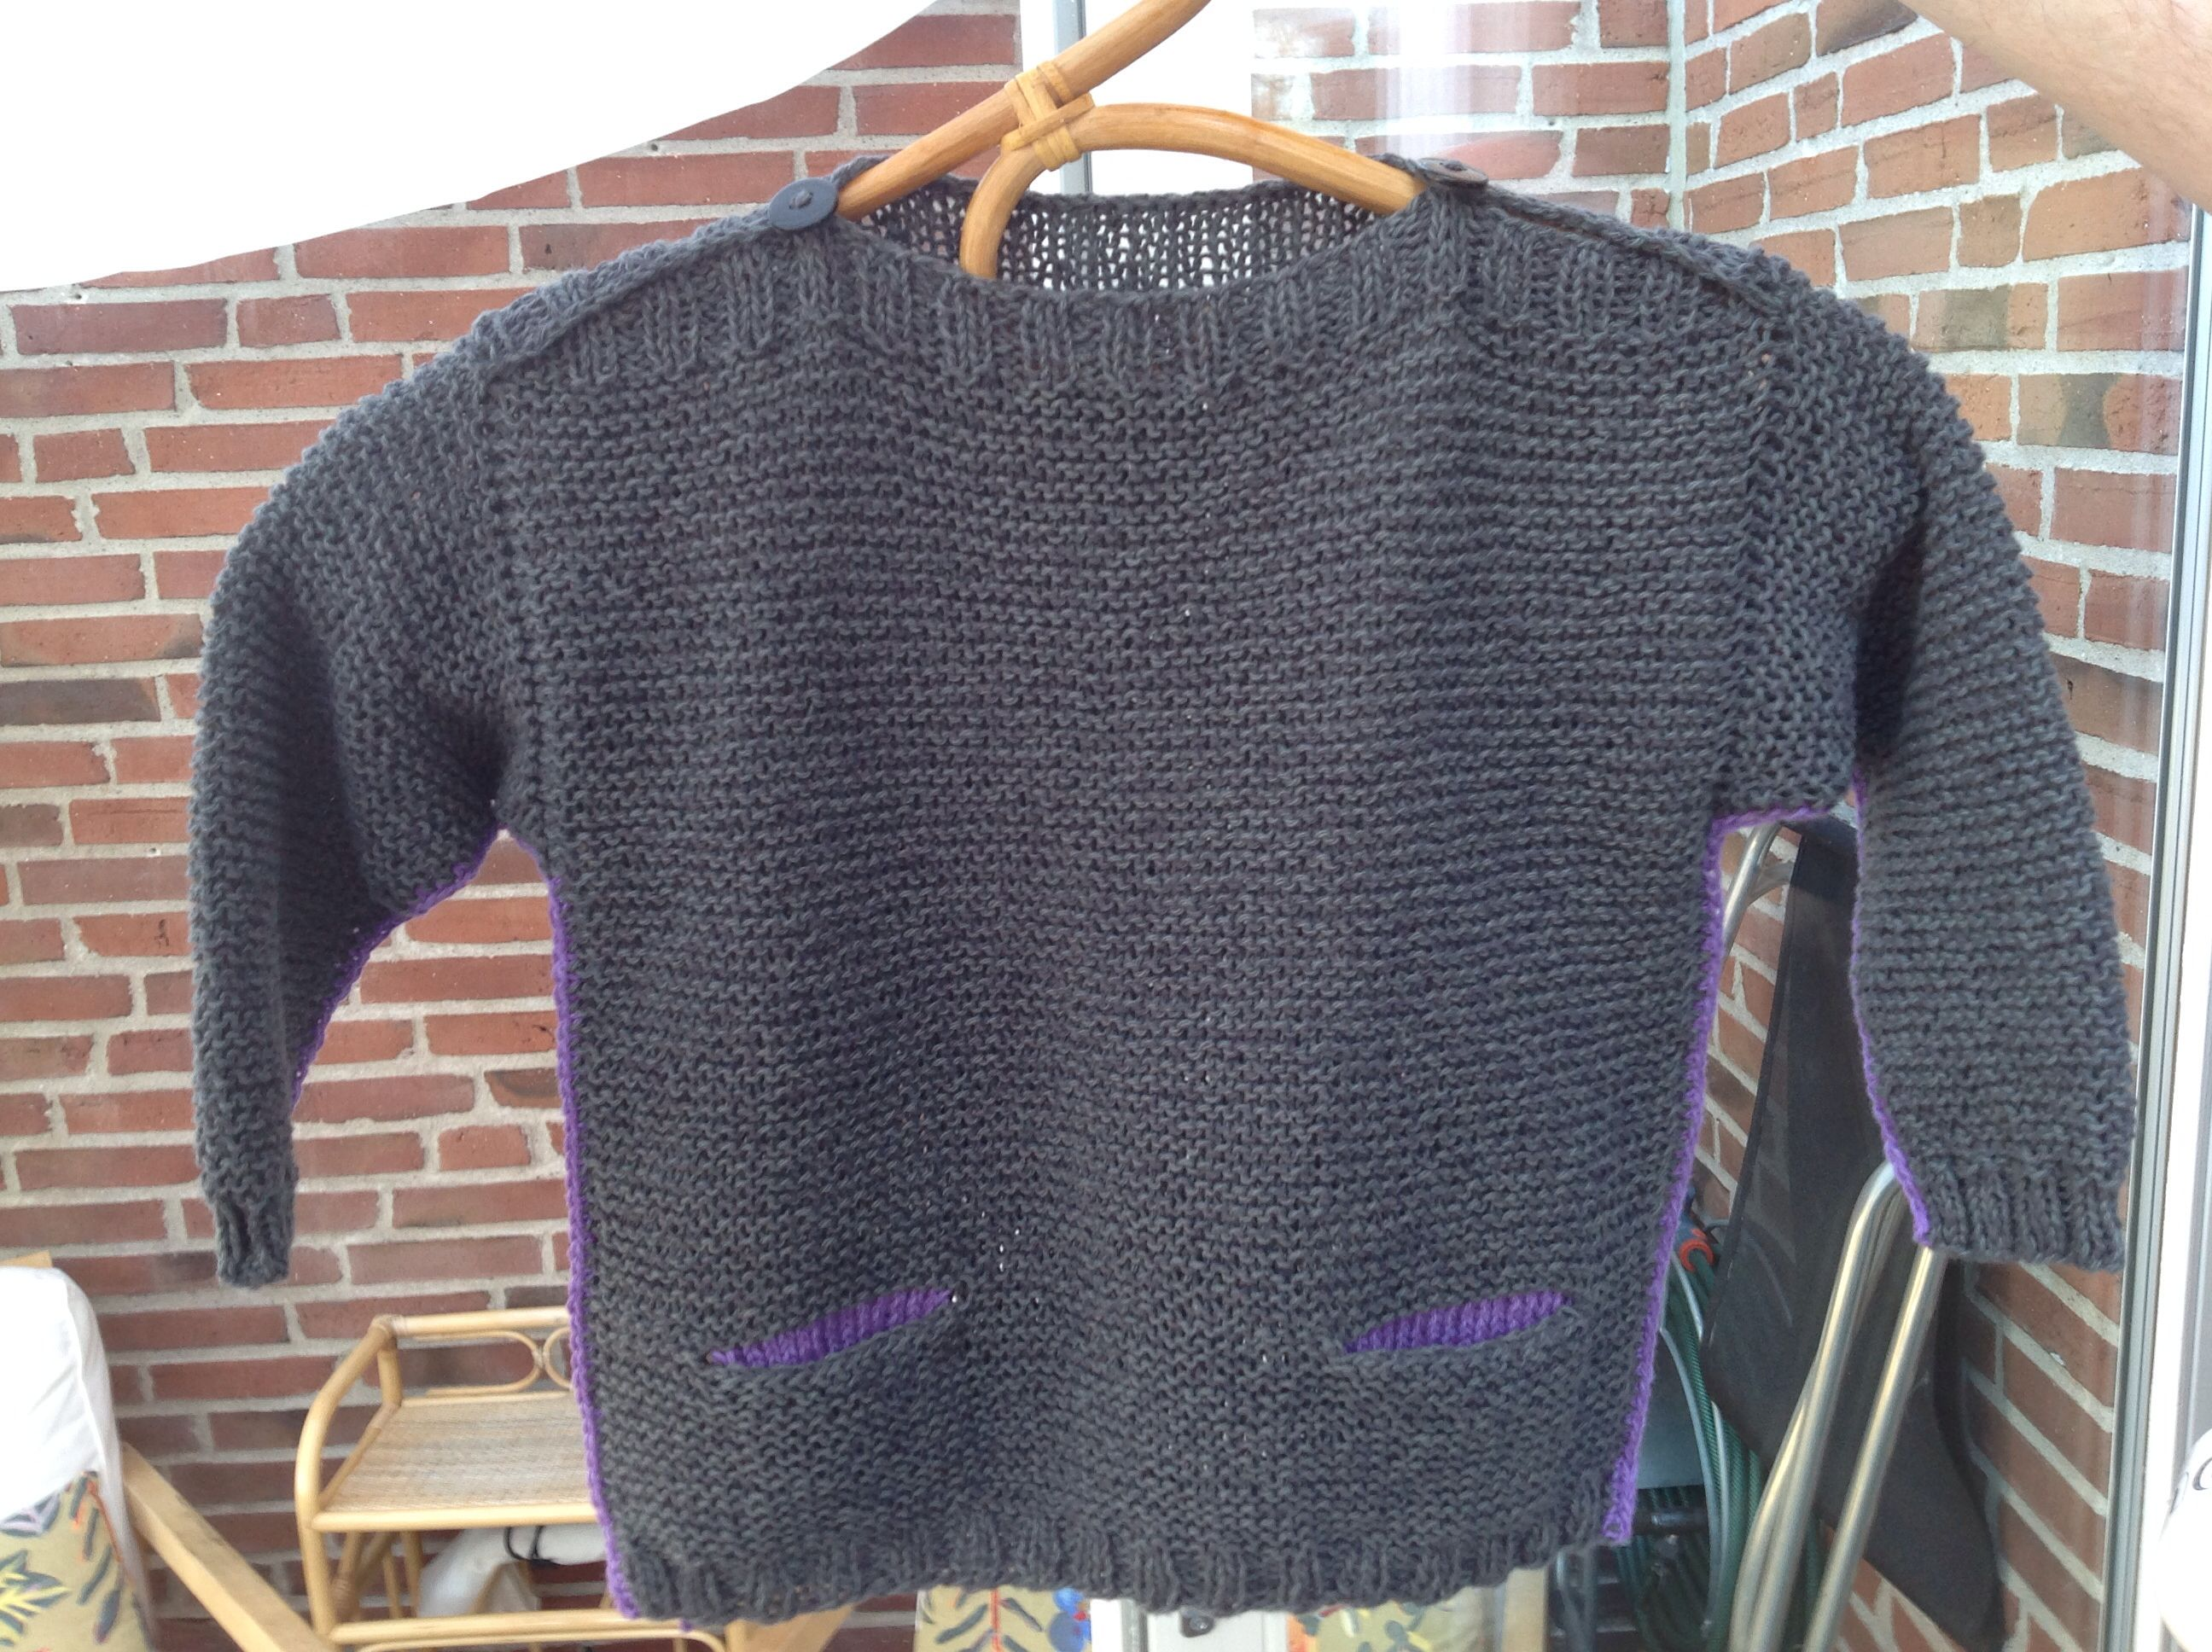 Sweater for Molly